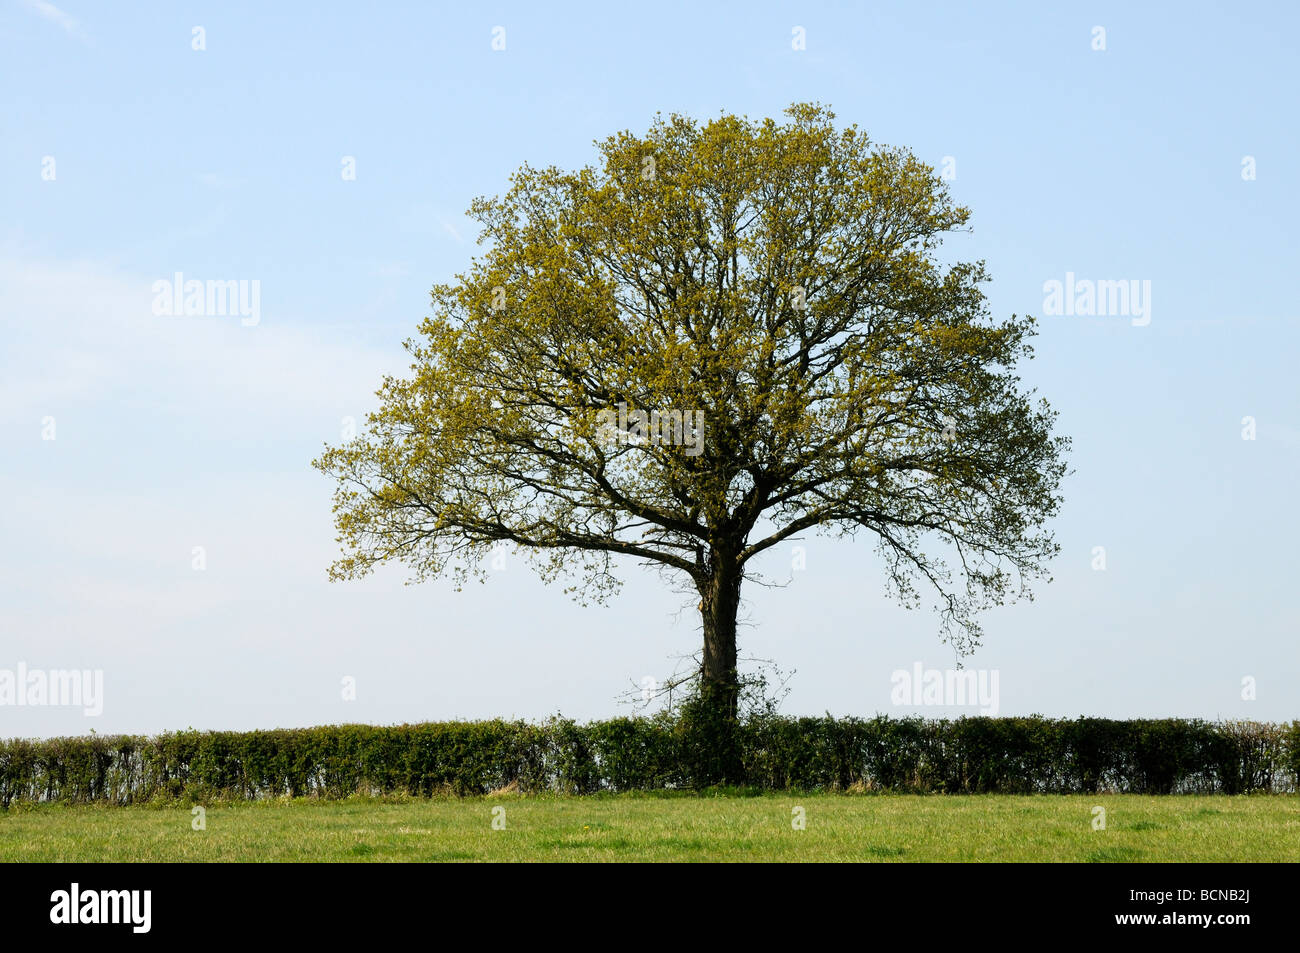 A neatly cut field hedge with an Oak tree (Quercus Robur) with leaves just appearing in spring. Burwash, Sussex,Stock Photo